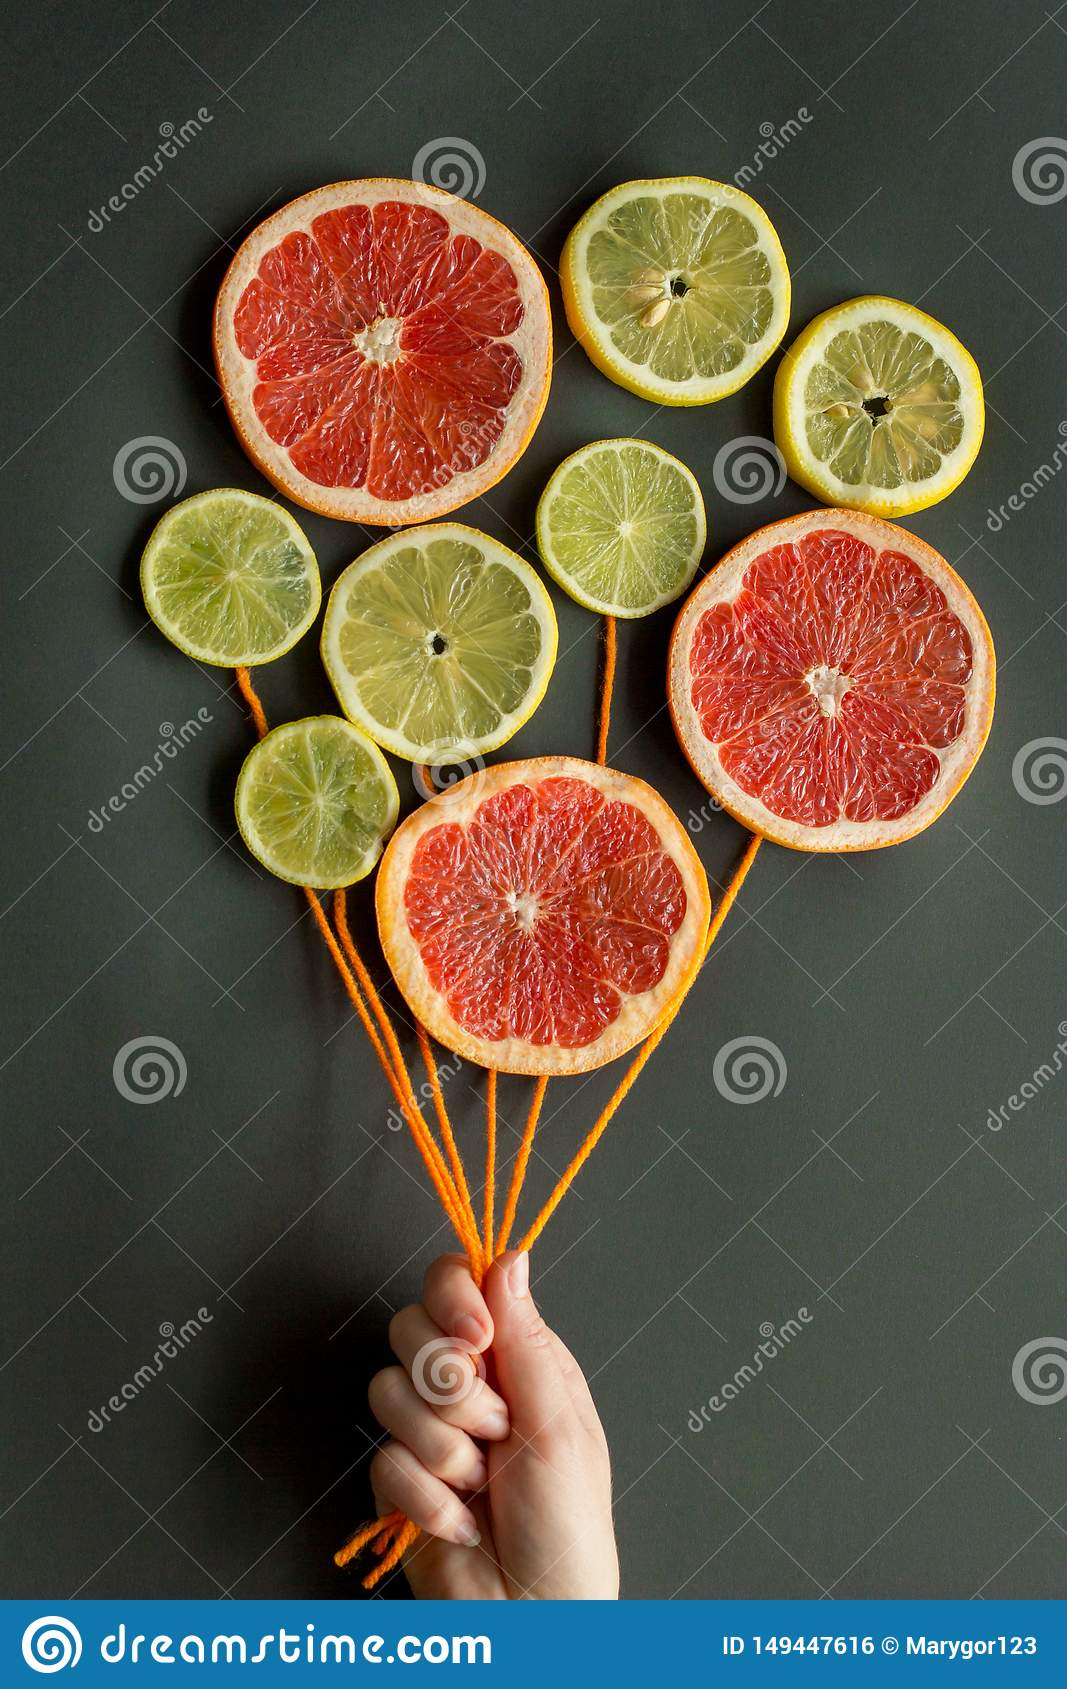 A female hand holds air balloons with orange threads made of citrus slices lemon, lime, orange, grapefruit on a black background